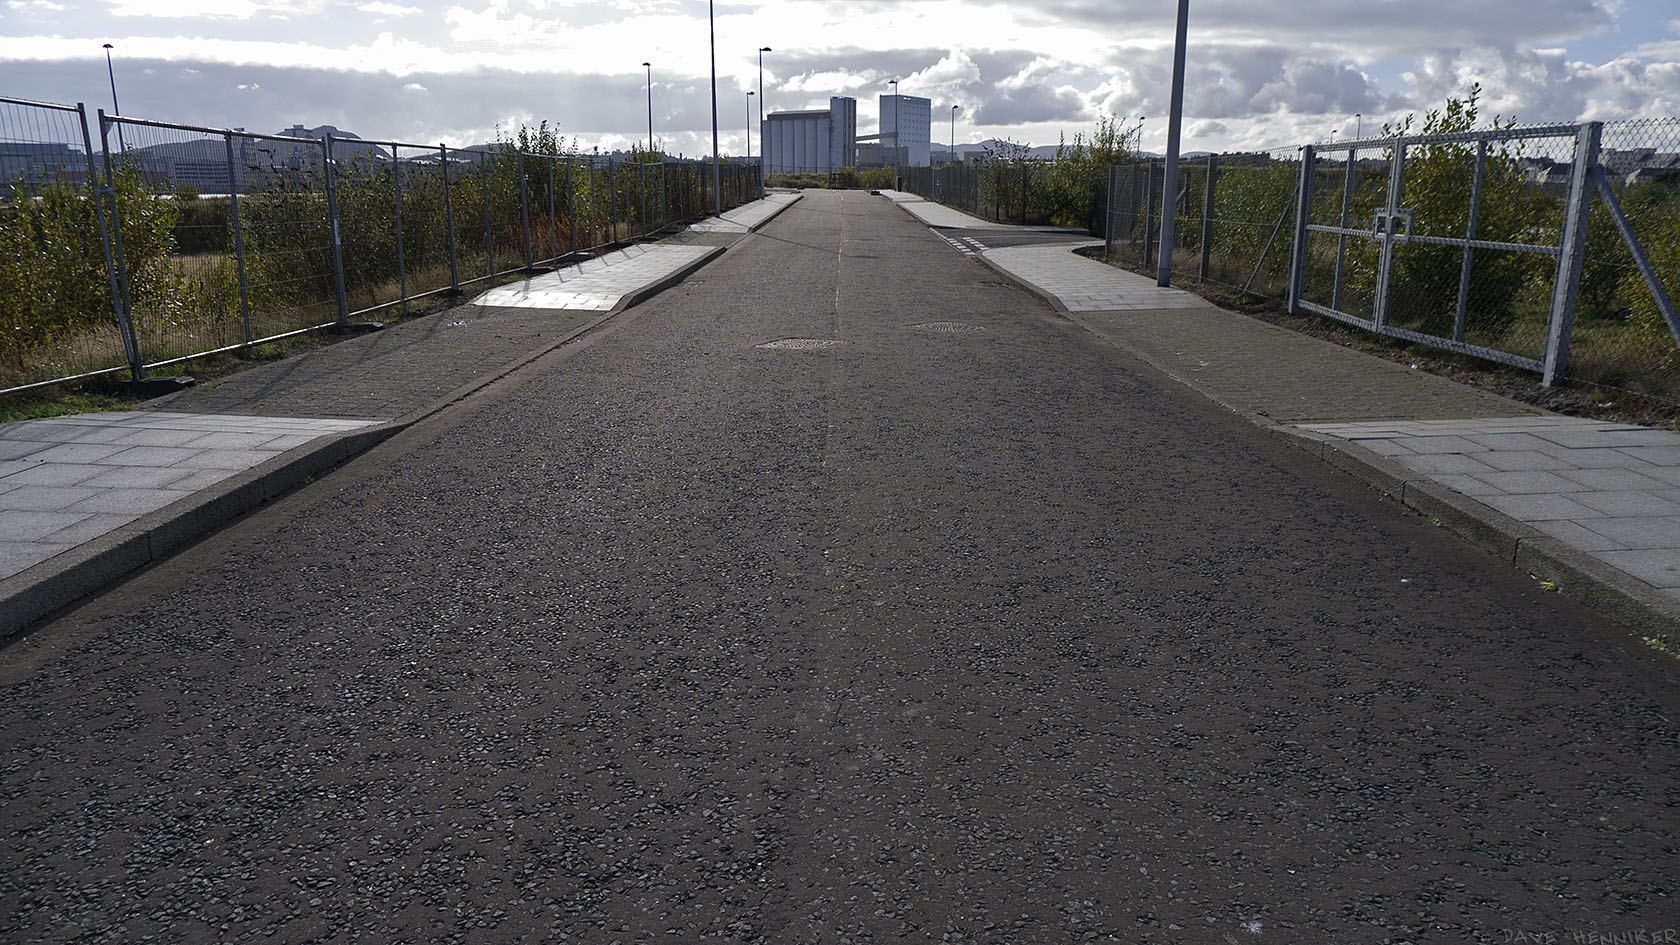 Still currently 'the road to nowhere'. Straight ahead is that flourmill again. The profile of Arthur's Seat and Salisbury Crags is on the left horizon.